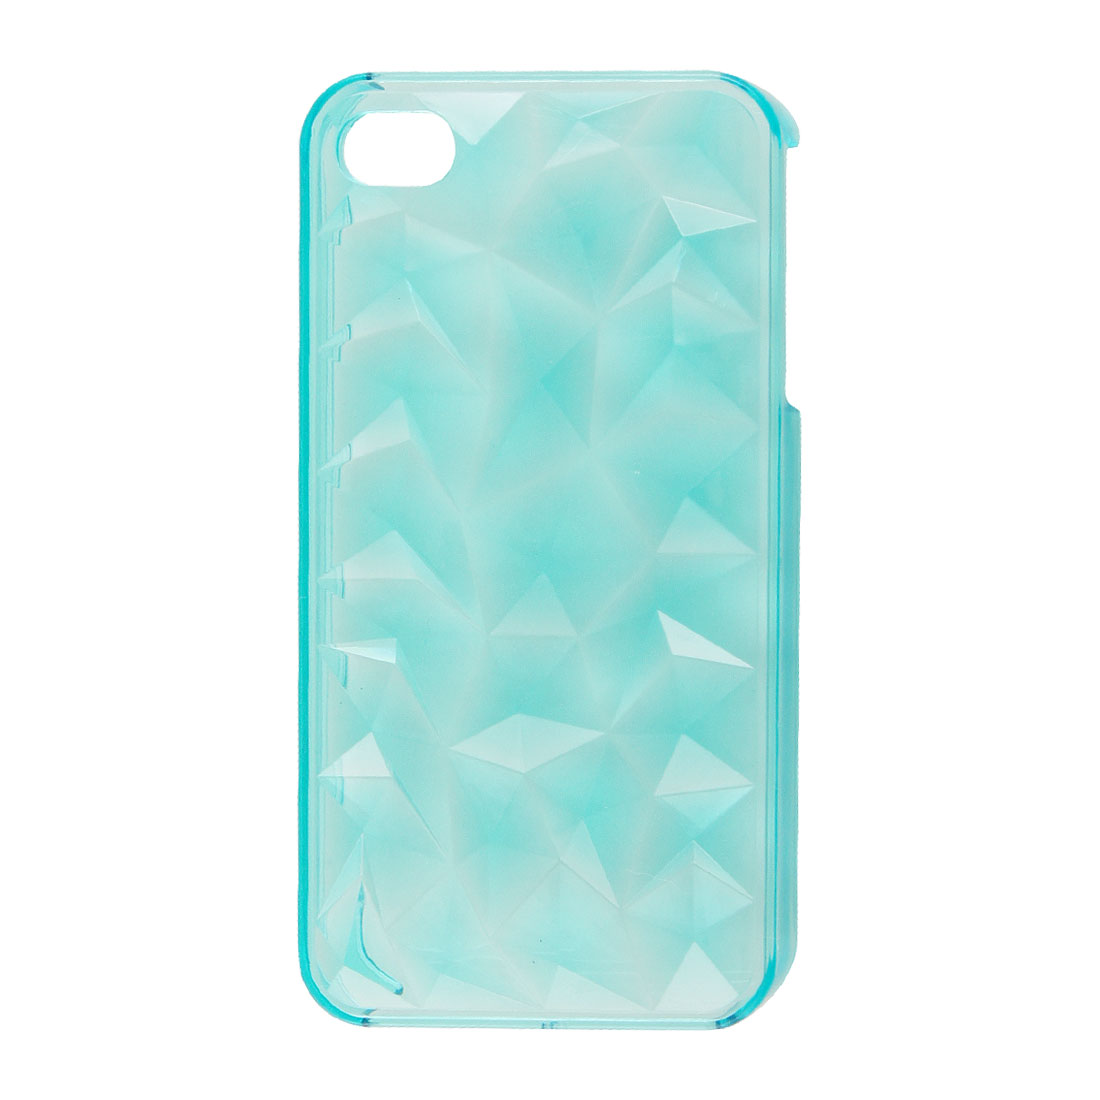 3D Water Cube Surface Clear Sky Blue Plastic Back Guard Shell for iPhone 4 4GS